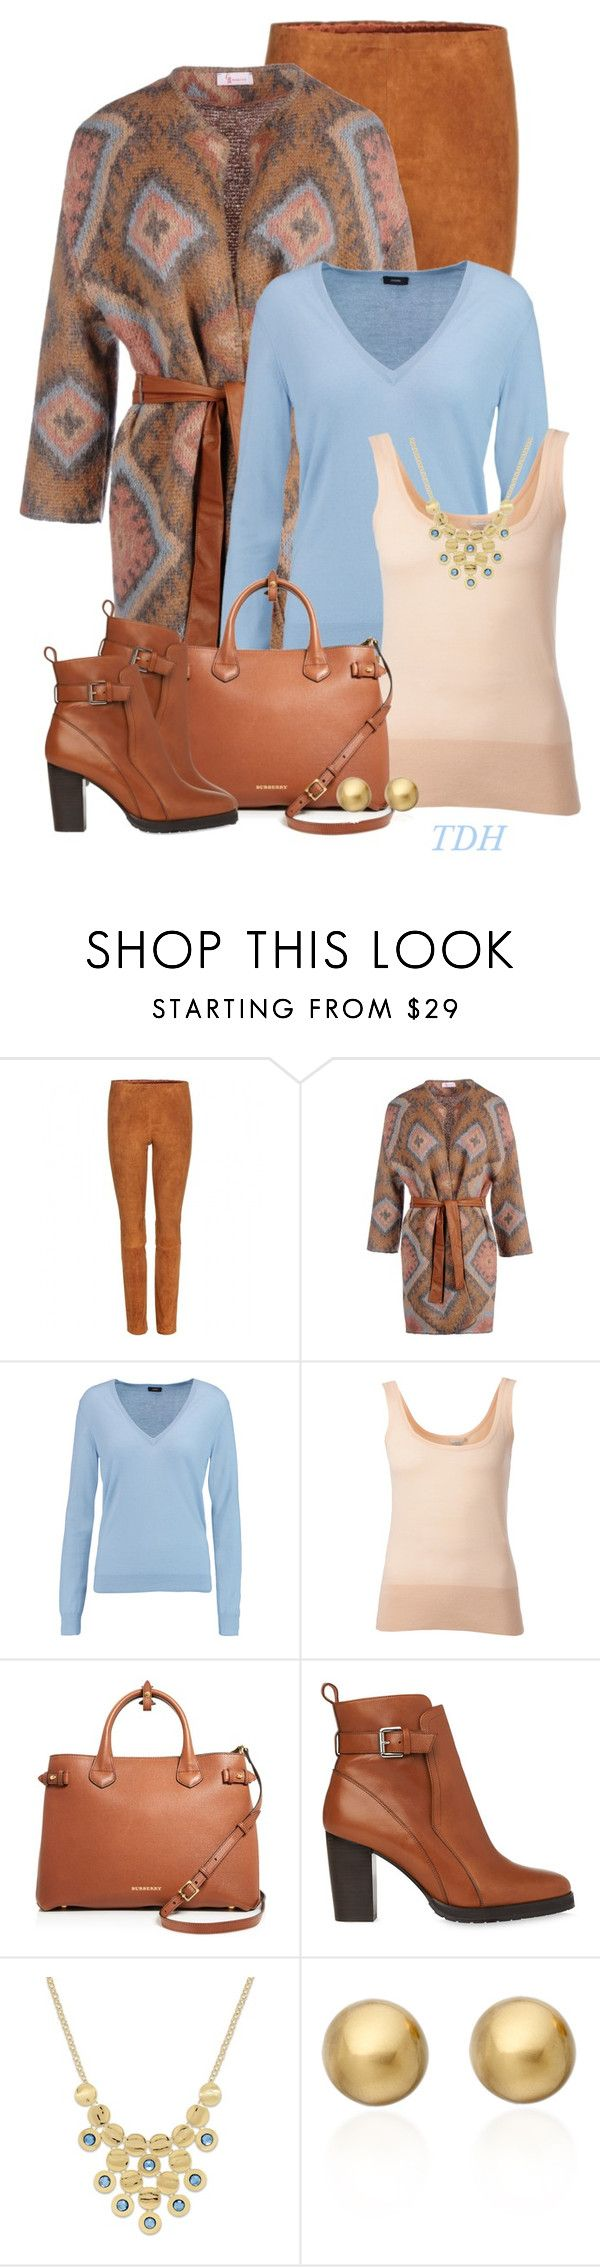 """""""Cardigan & Leggings"""" by talvadh ❤ liked on Polyvore featuring STOULS, George J. Love, Joseph, Michael Kors, Burberry, Whistles, Style & Co., Astley Clarke, women's clothing and women's fashion"""